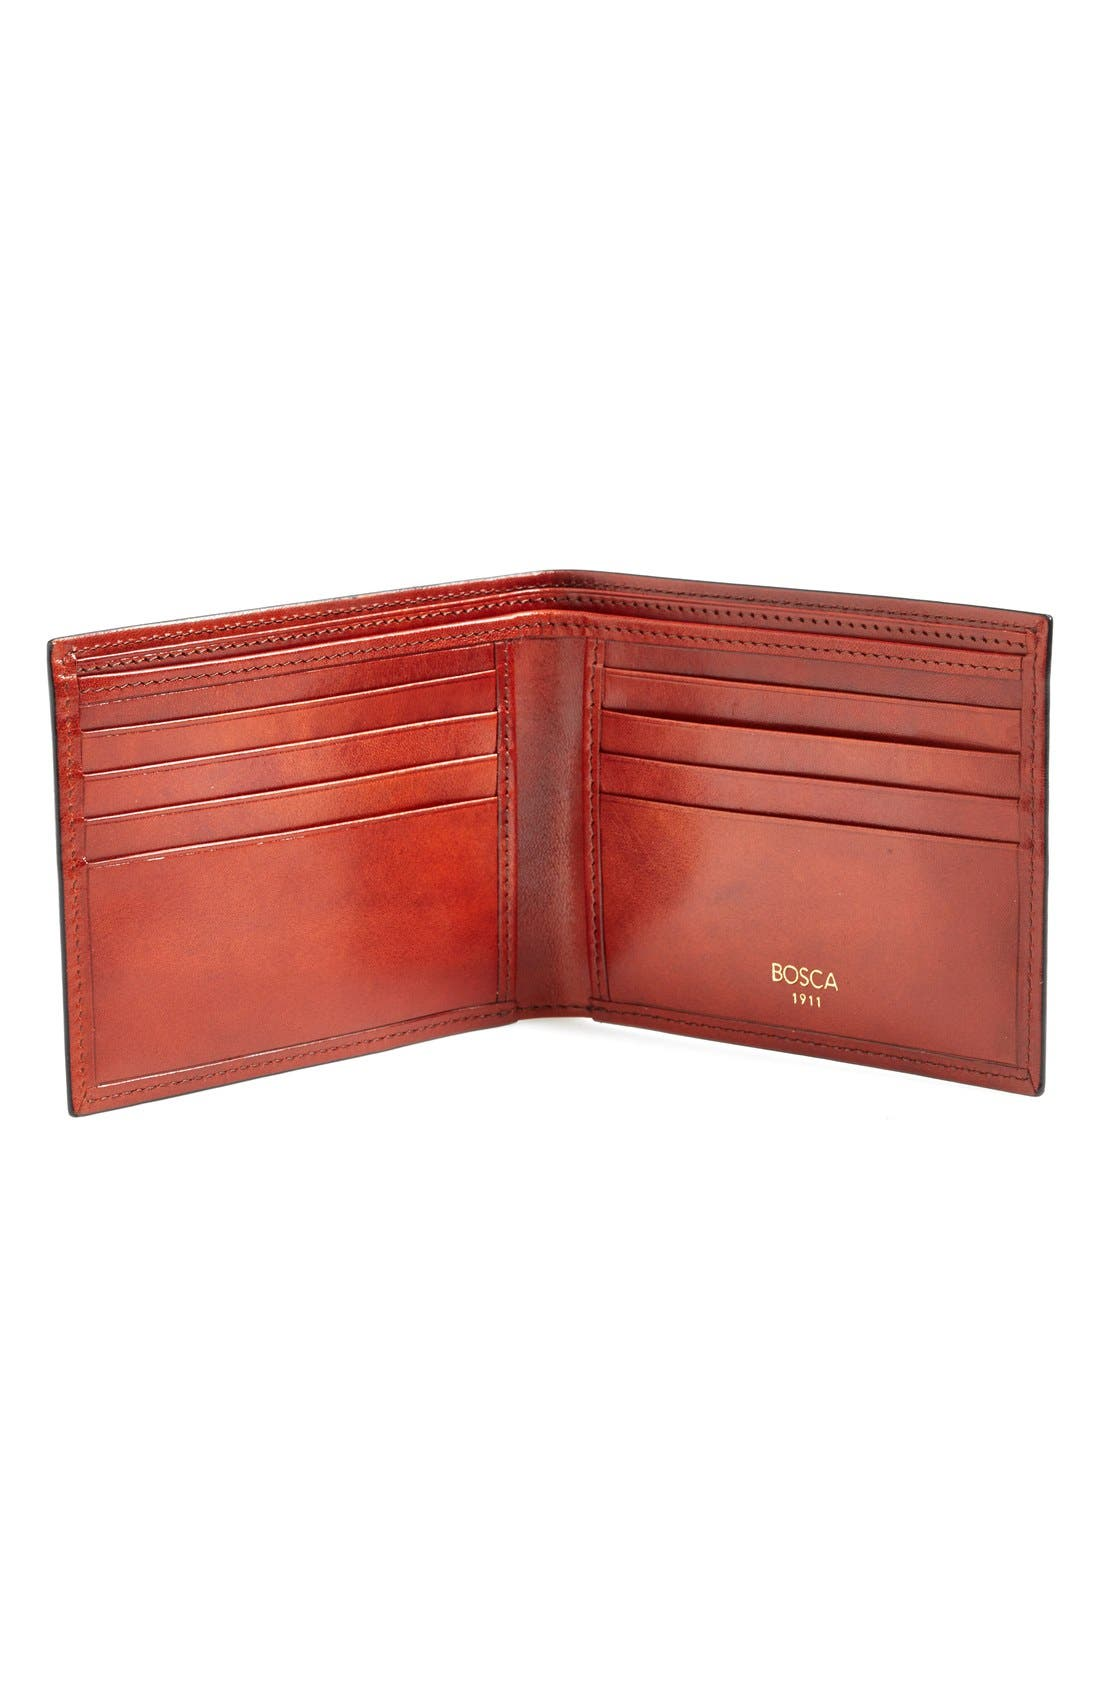 Alternate Image 3  - Bosca 'Old Leather' Deluxe Wallet